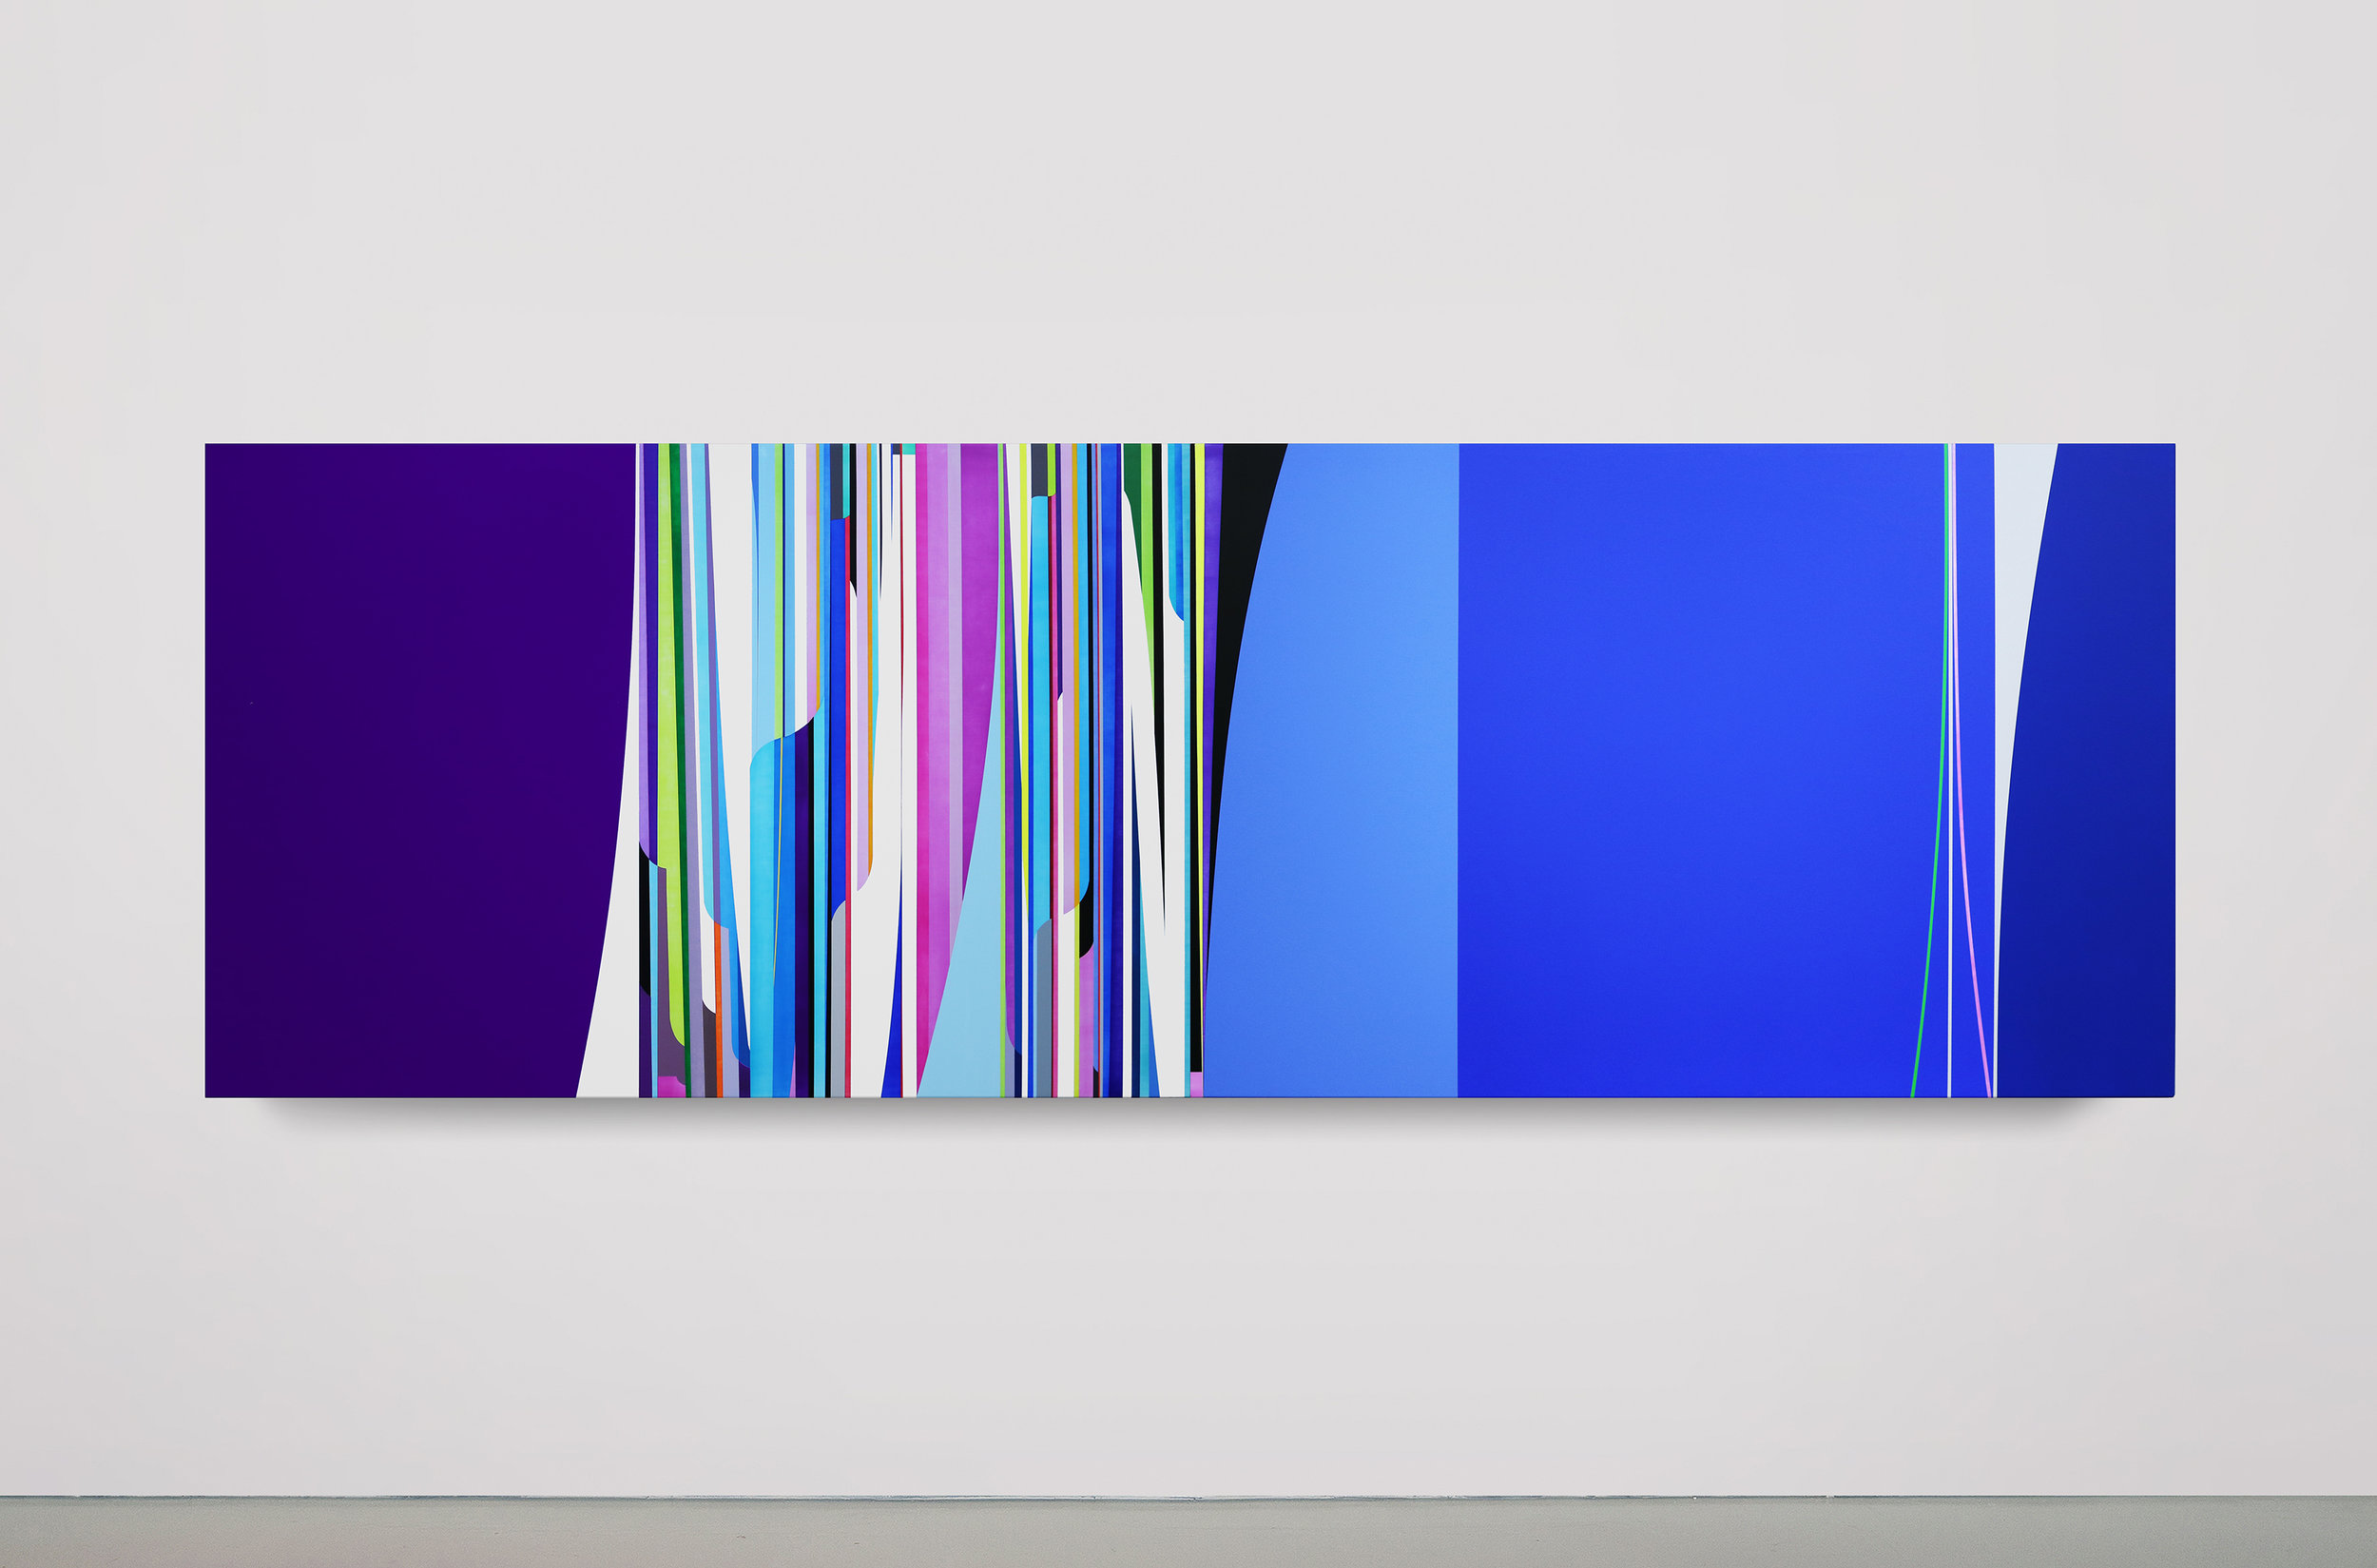 Dion Johnson, Perfect Day, 2016, acrylic on canvas, 40 x 120 inches